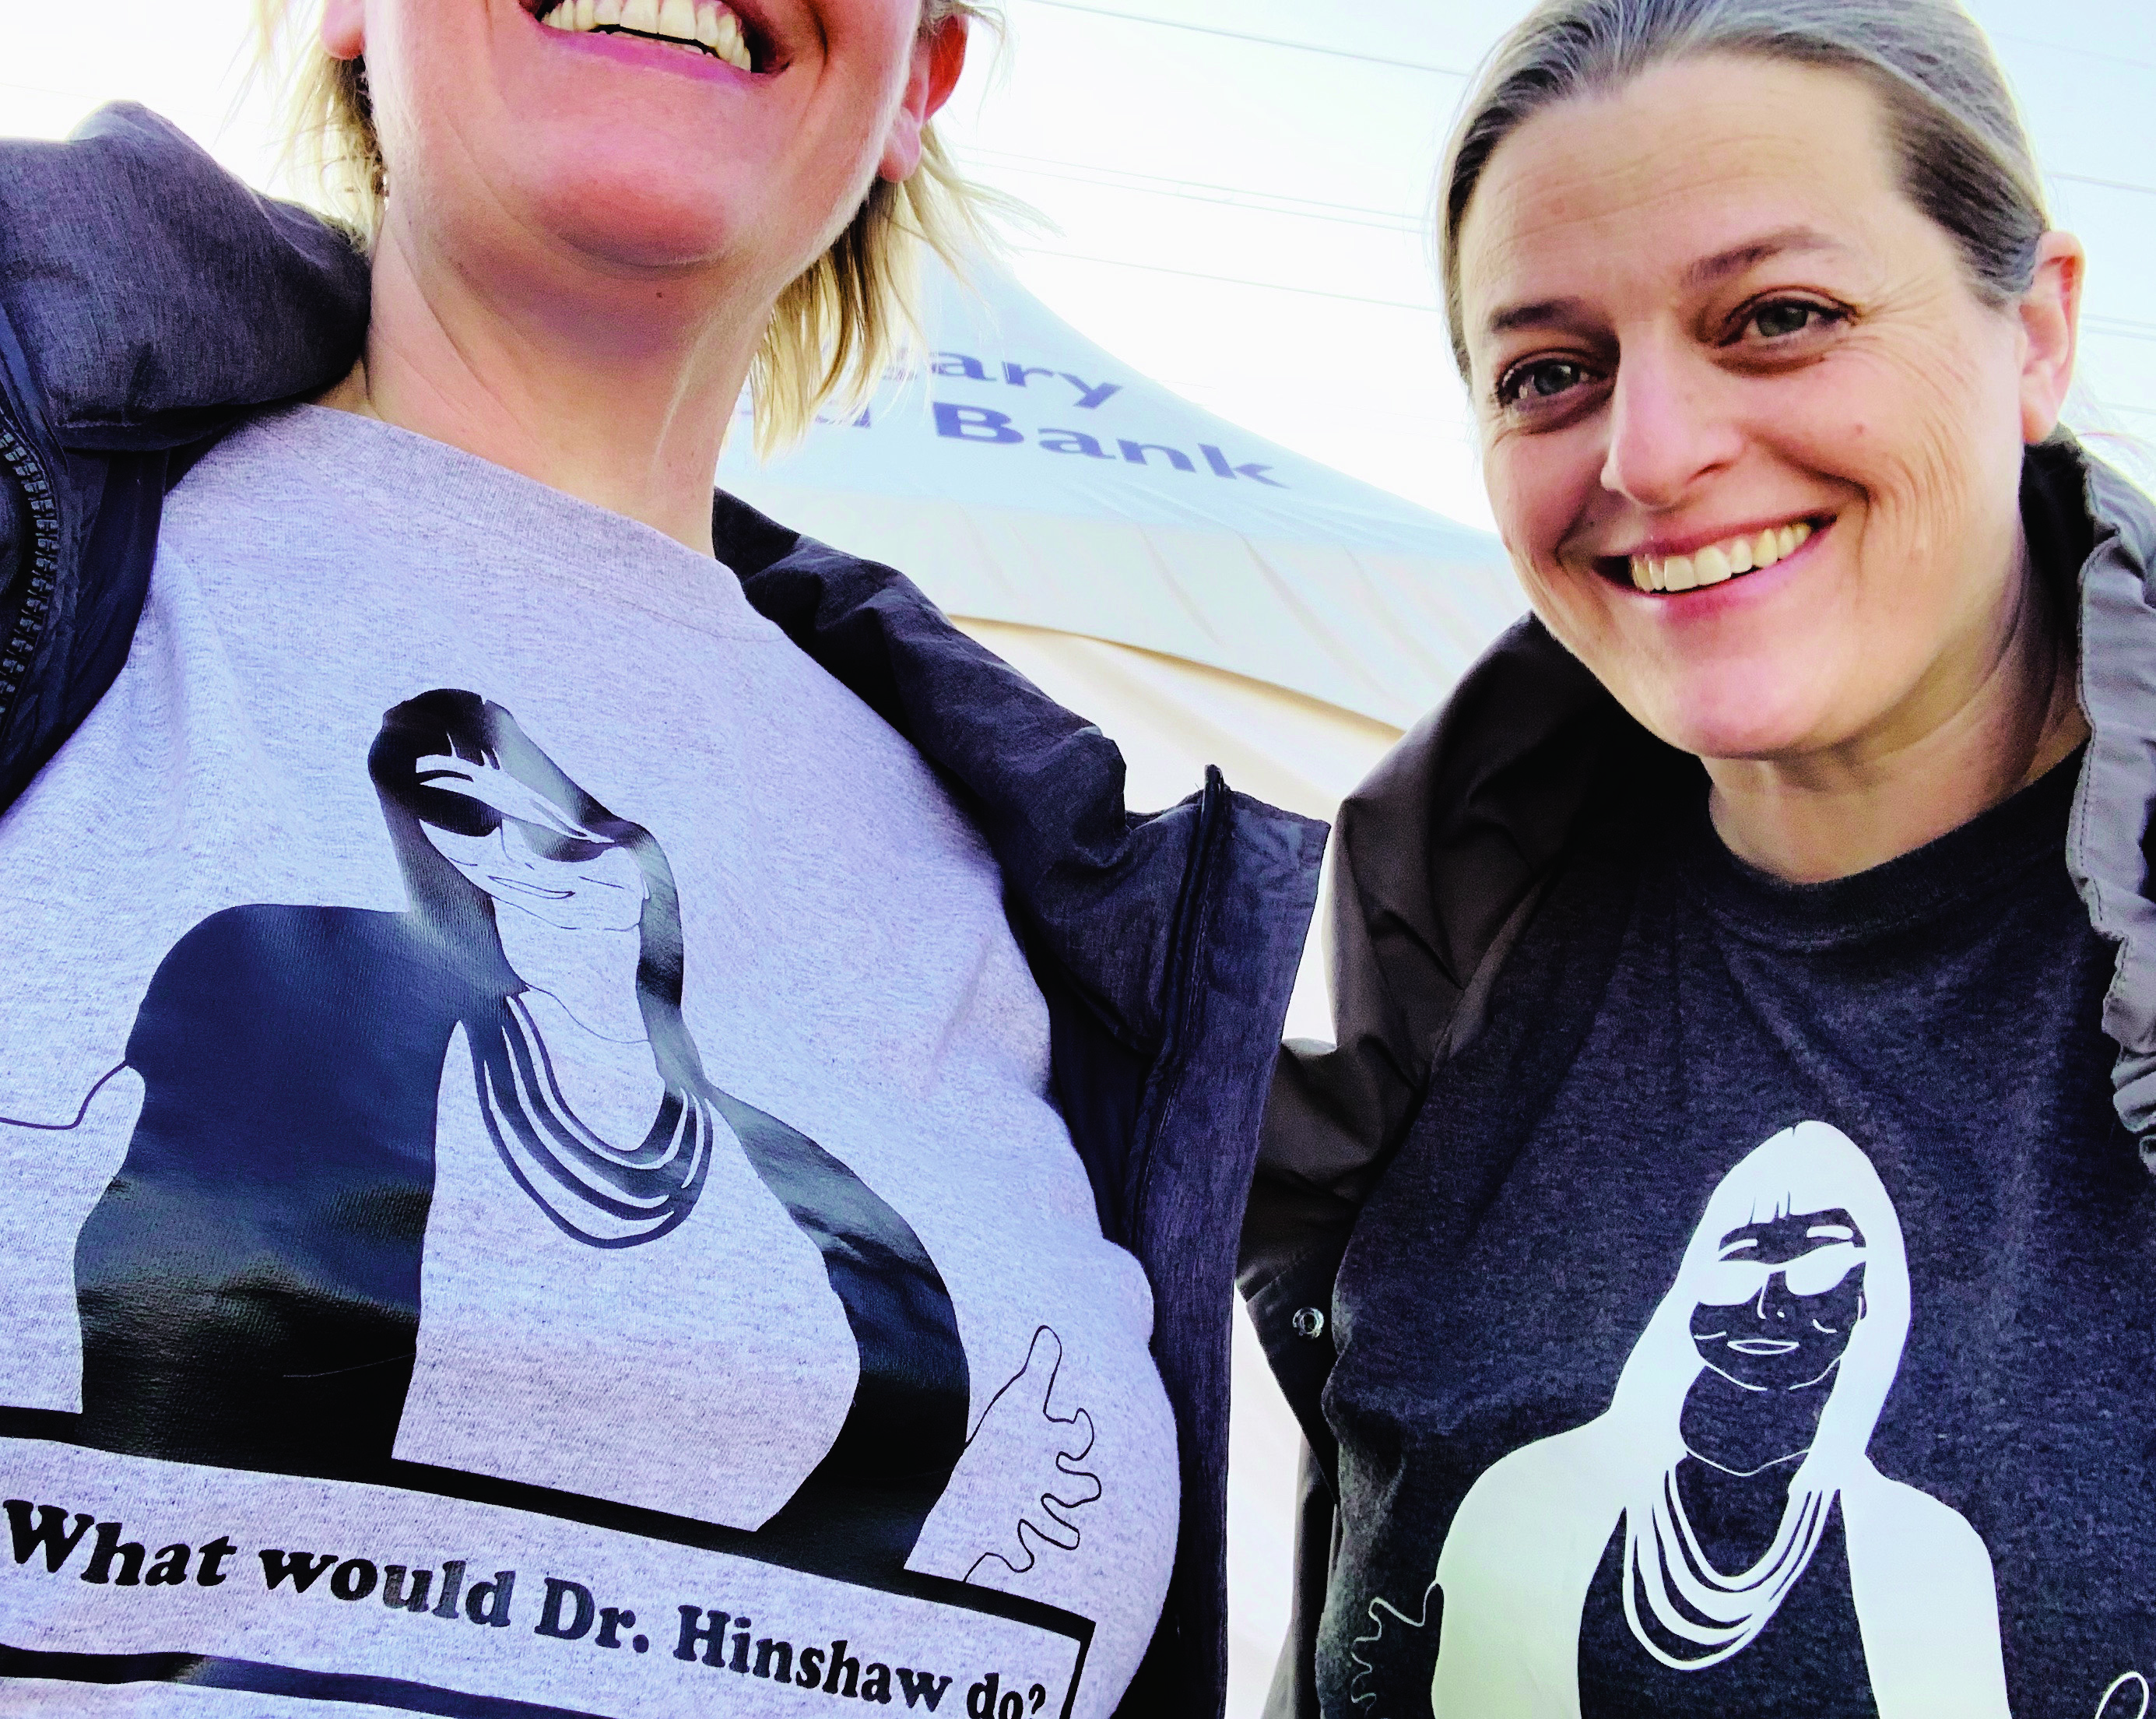 Van Rosendaal (right) was inspired by the leadership of Alberta's chief medical officer of health; a late-night burst of creativity led to her popular 'What would Dr. Hinshaw do?' T-shirts (Courtesy of Julie and Alison Van Rosendaal)